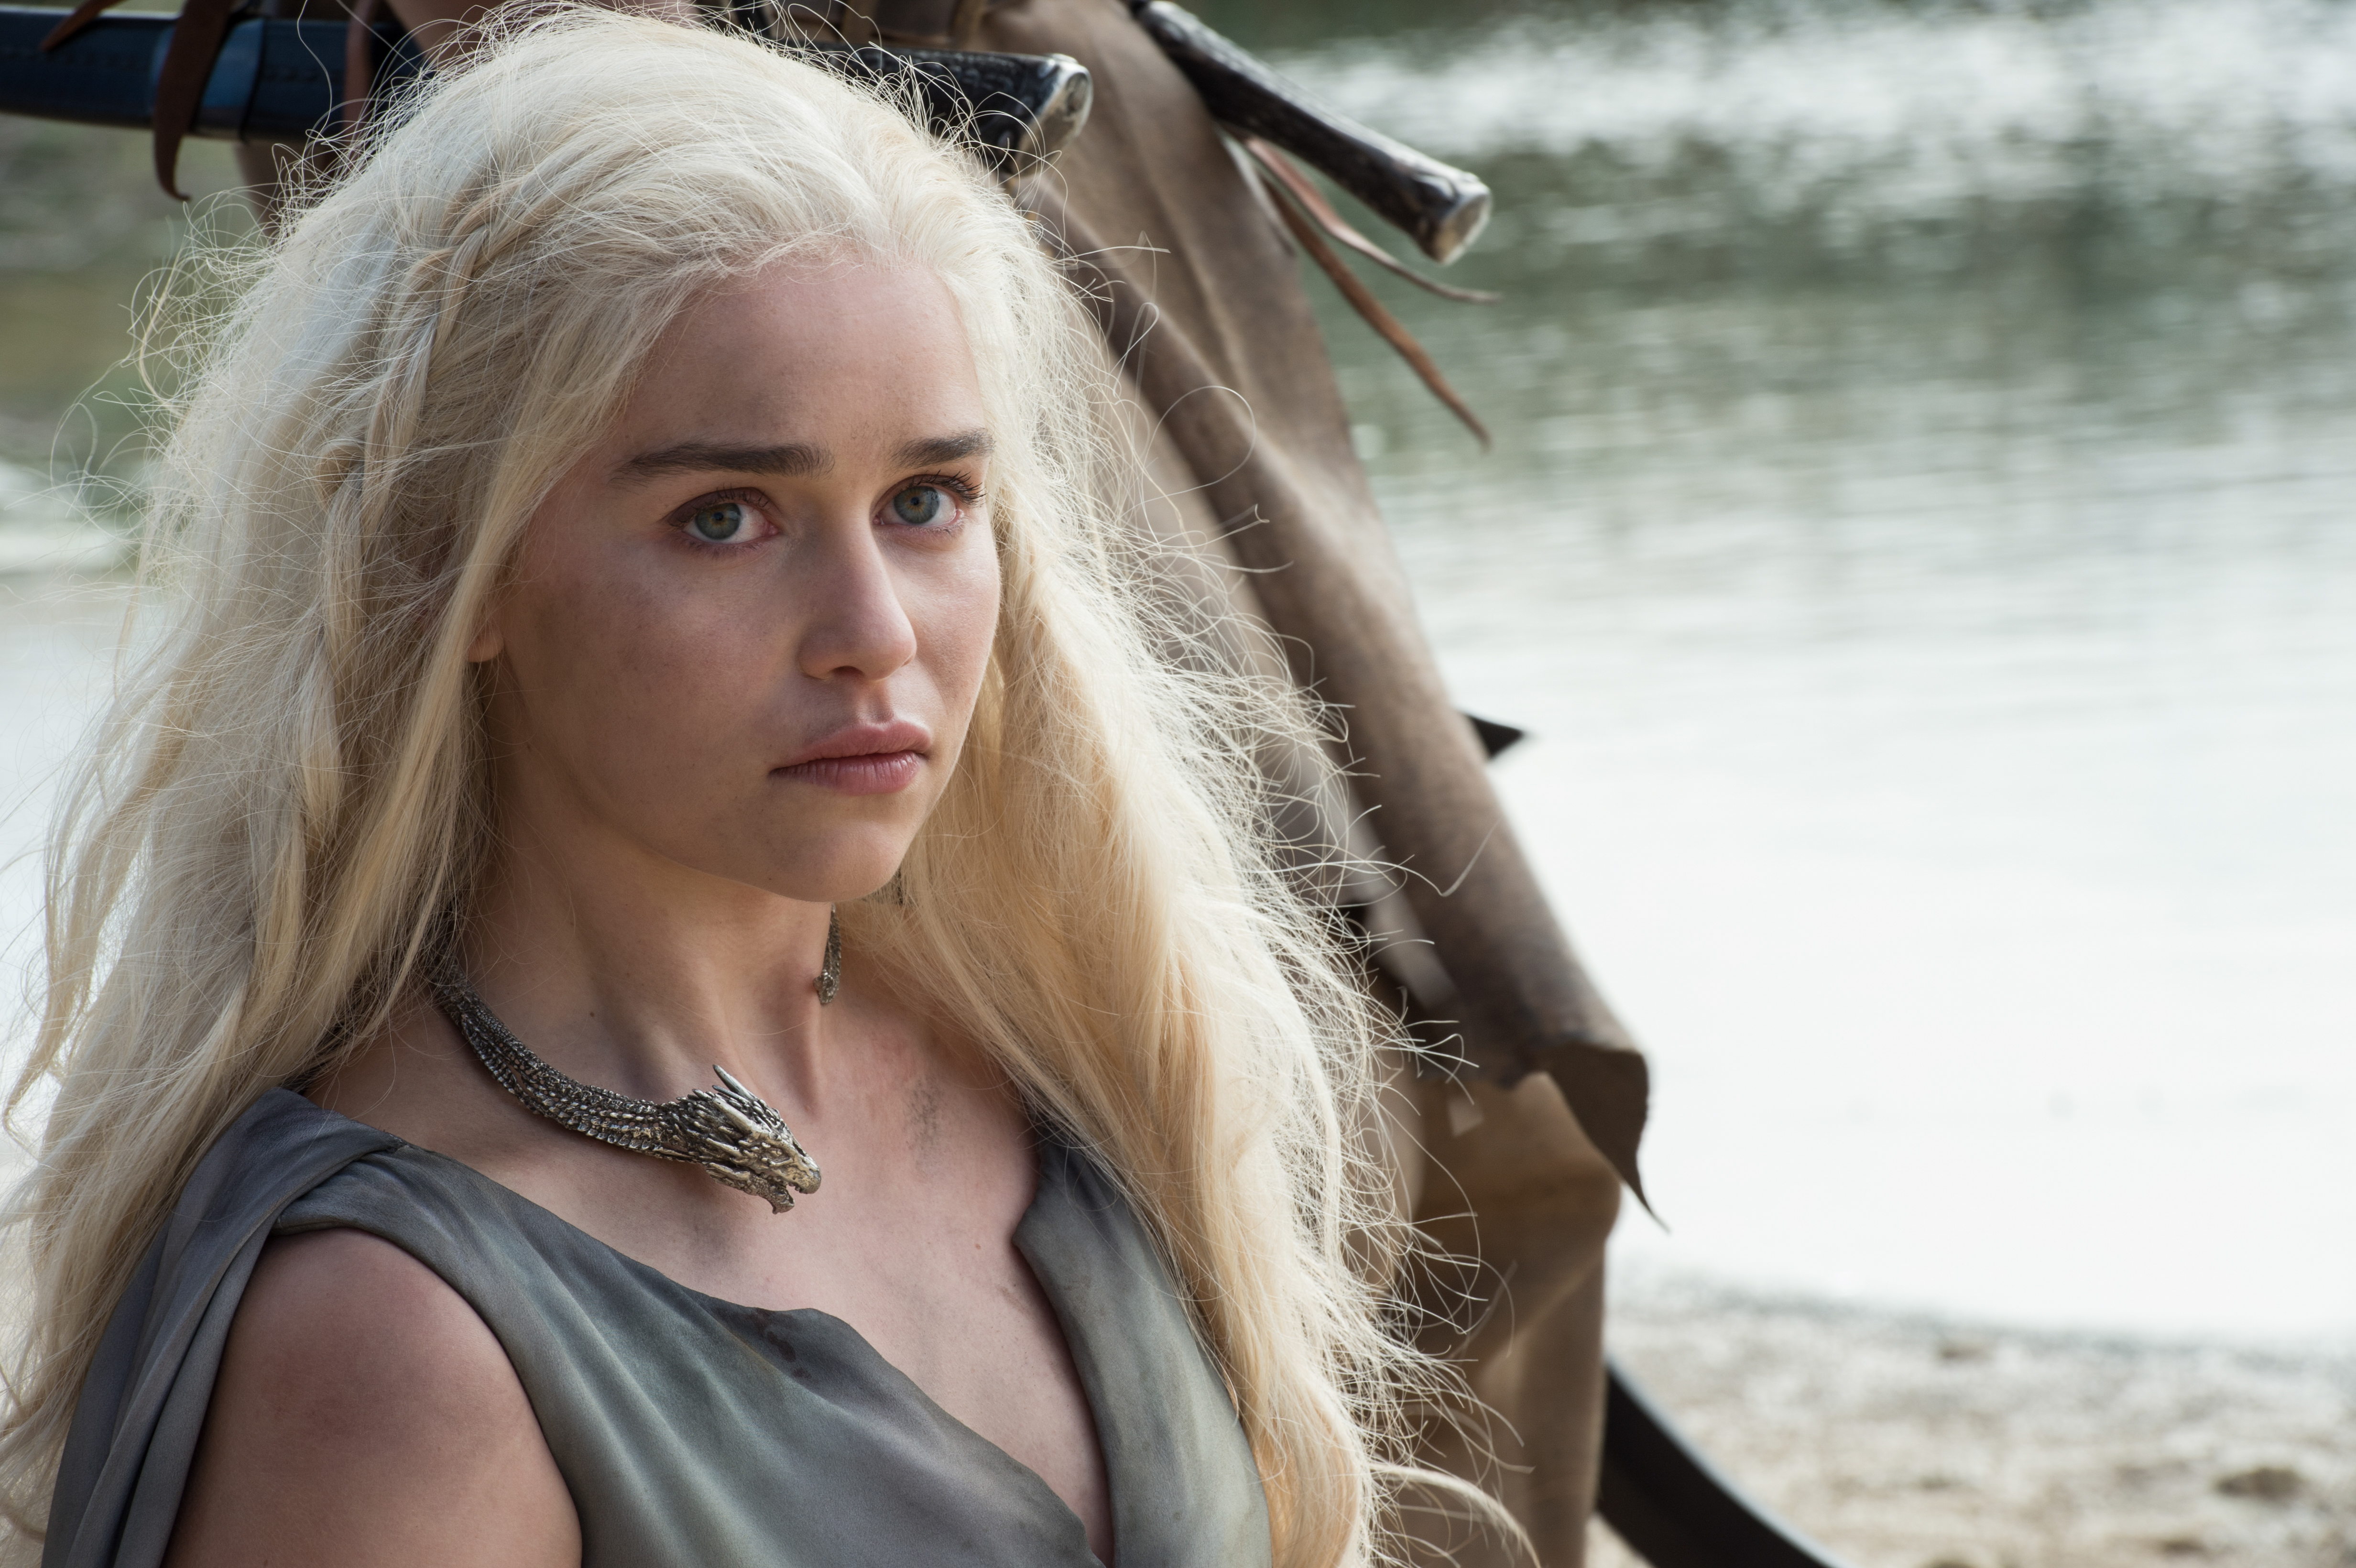 Here S Where You Can Buy The Actual Jewellery Worn On Game Of Thrones